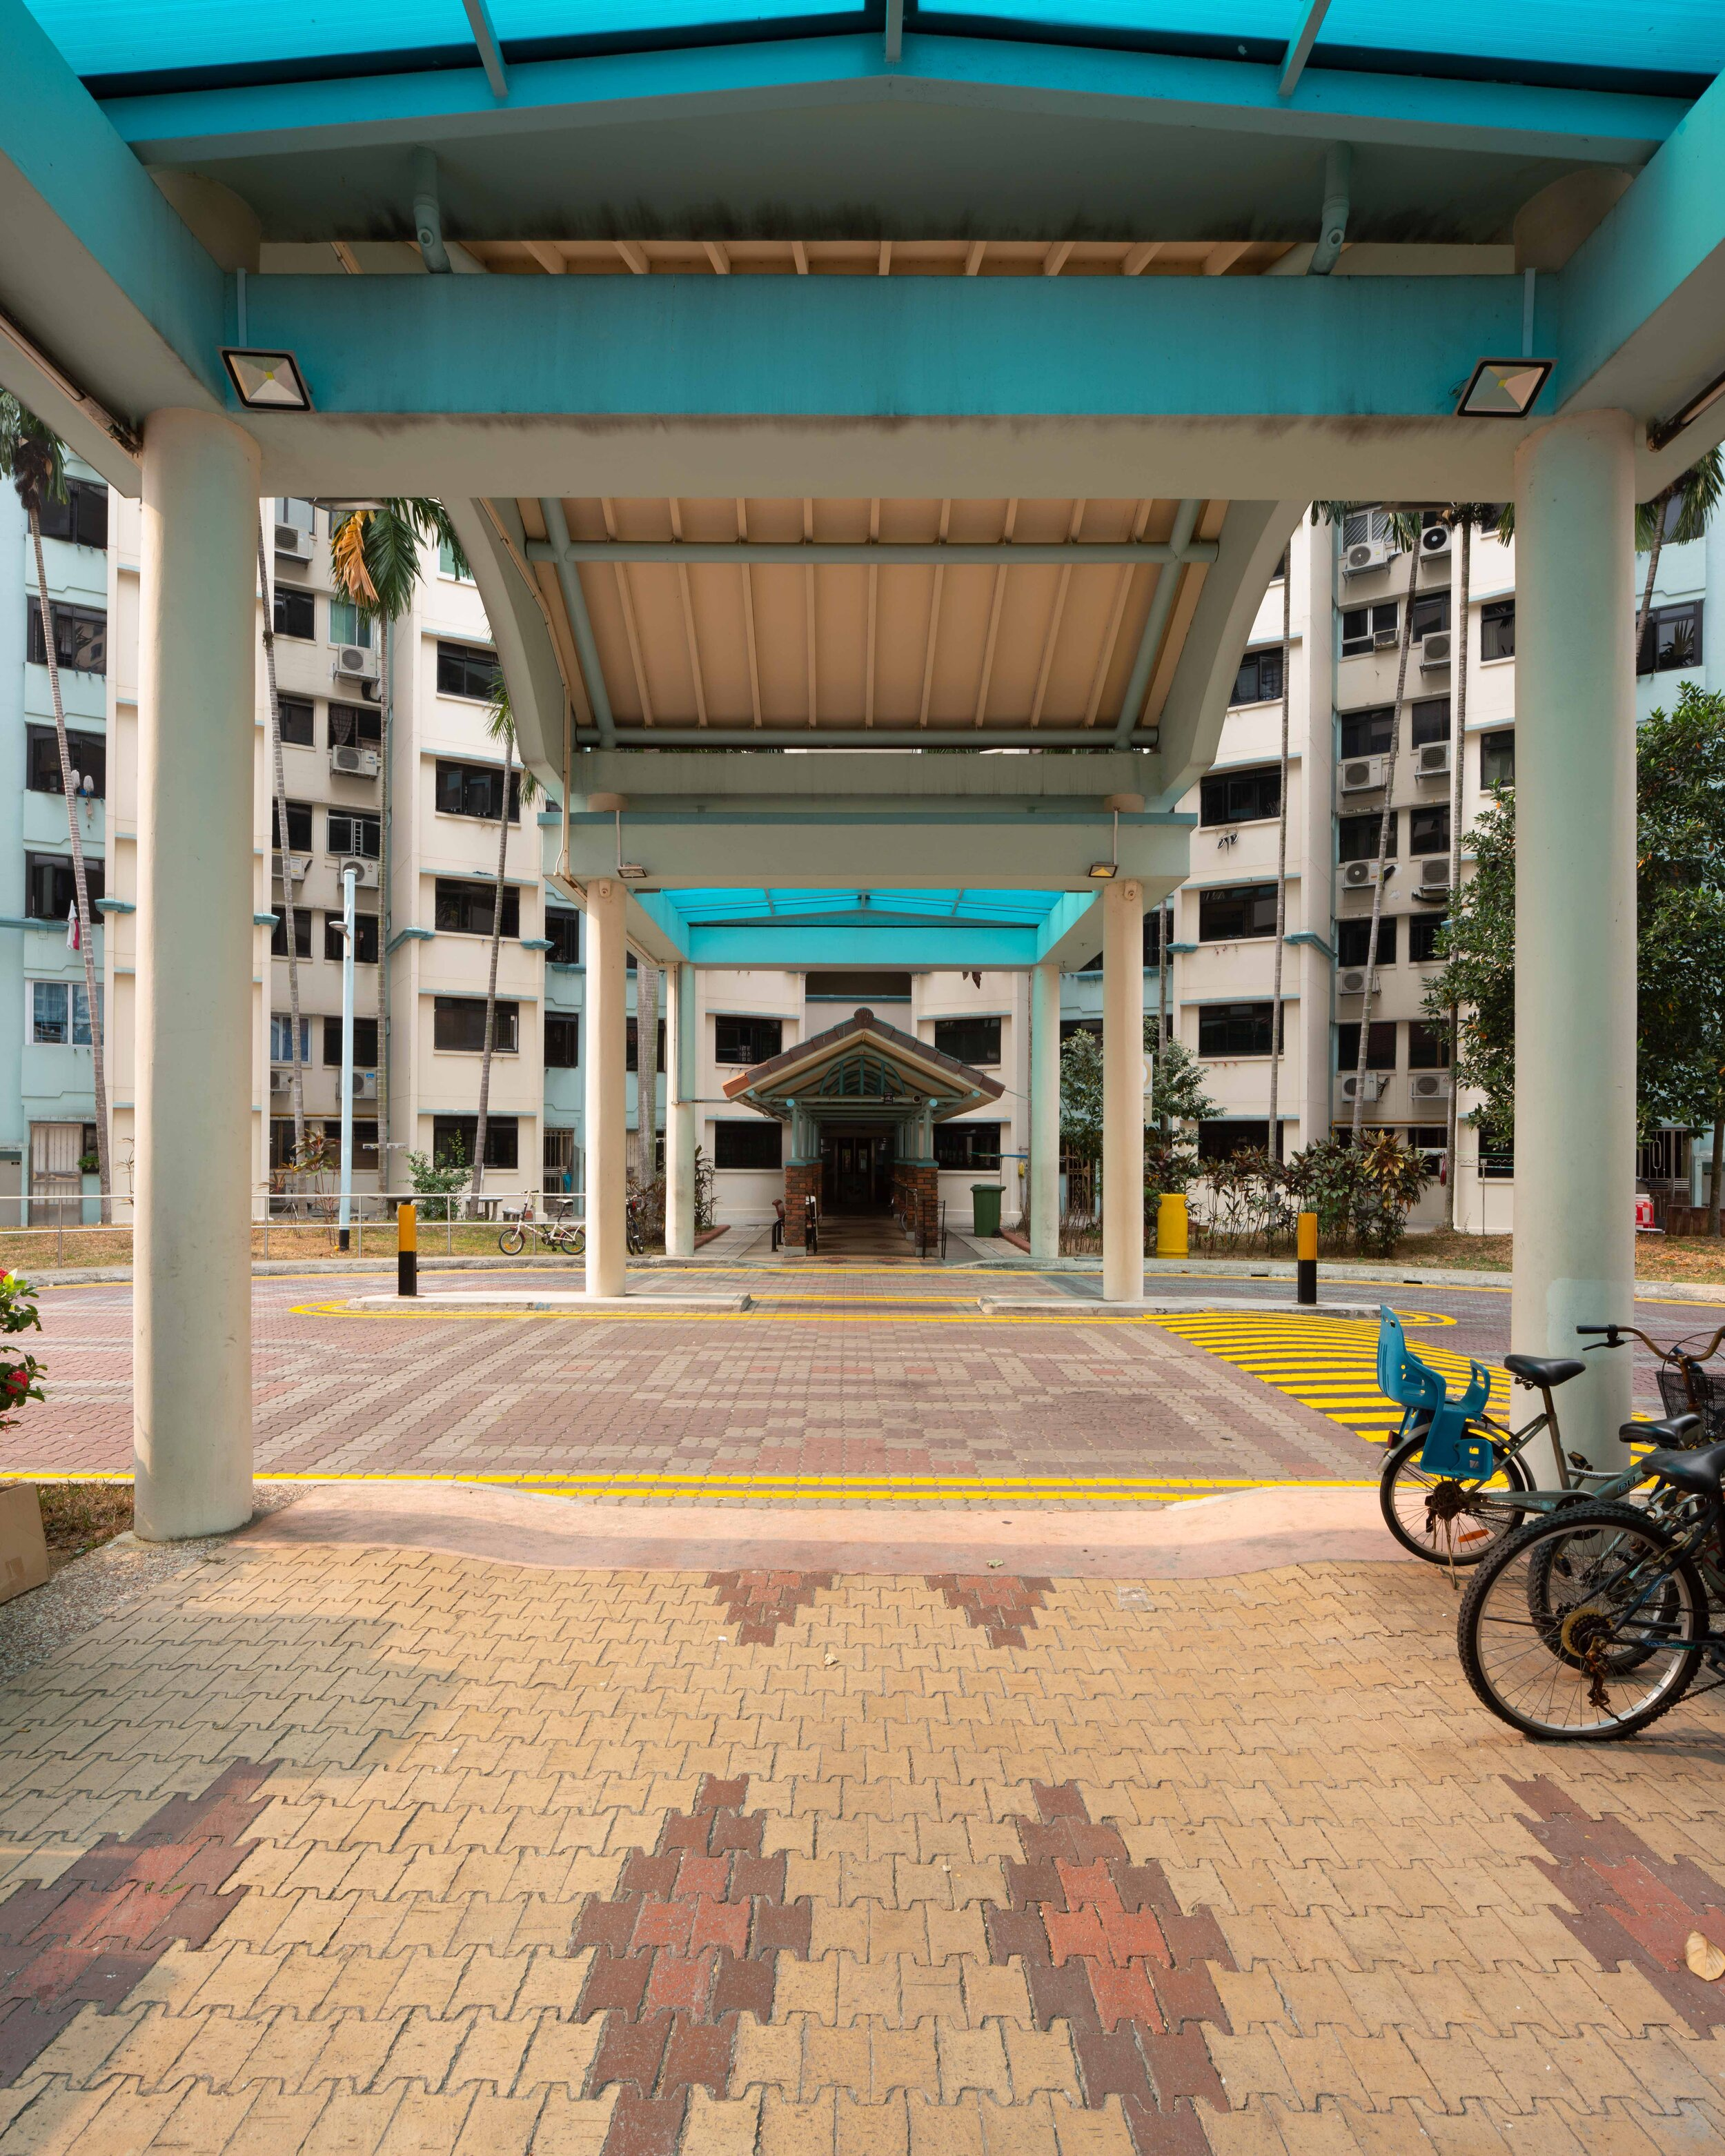 54 Lorong 5 Toa Payoh 190918 85, image by Andrew Campbell Nelson.jpg